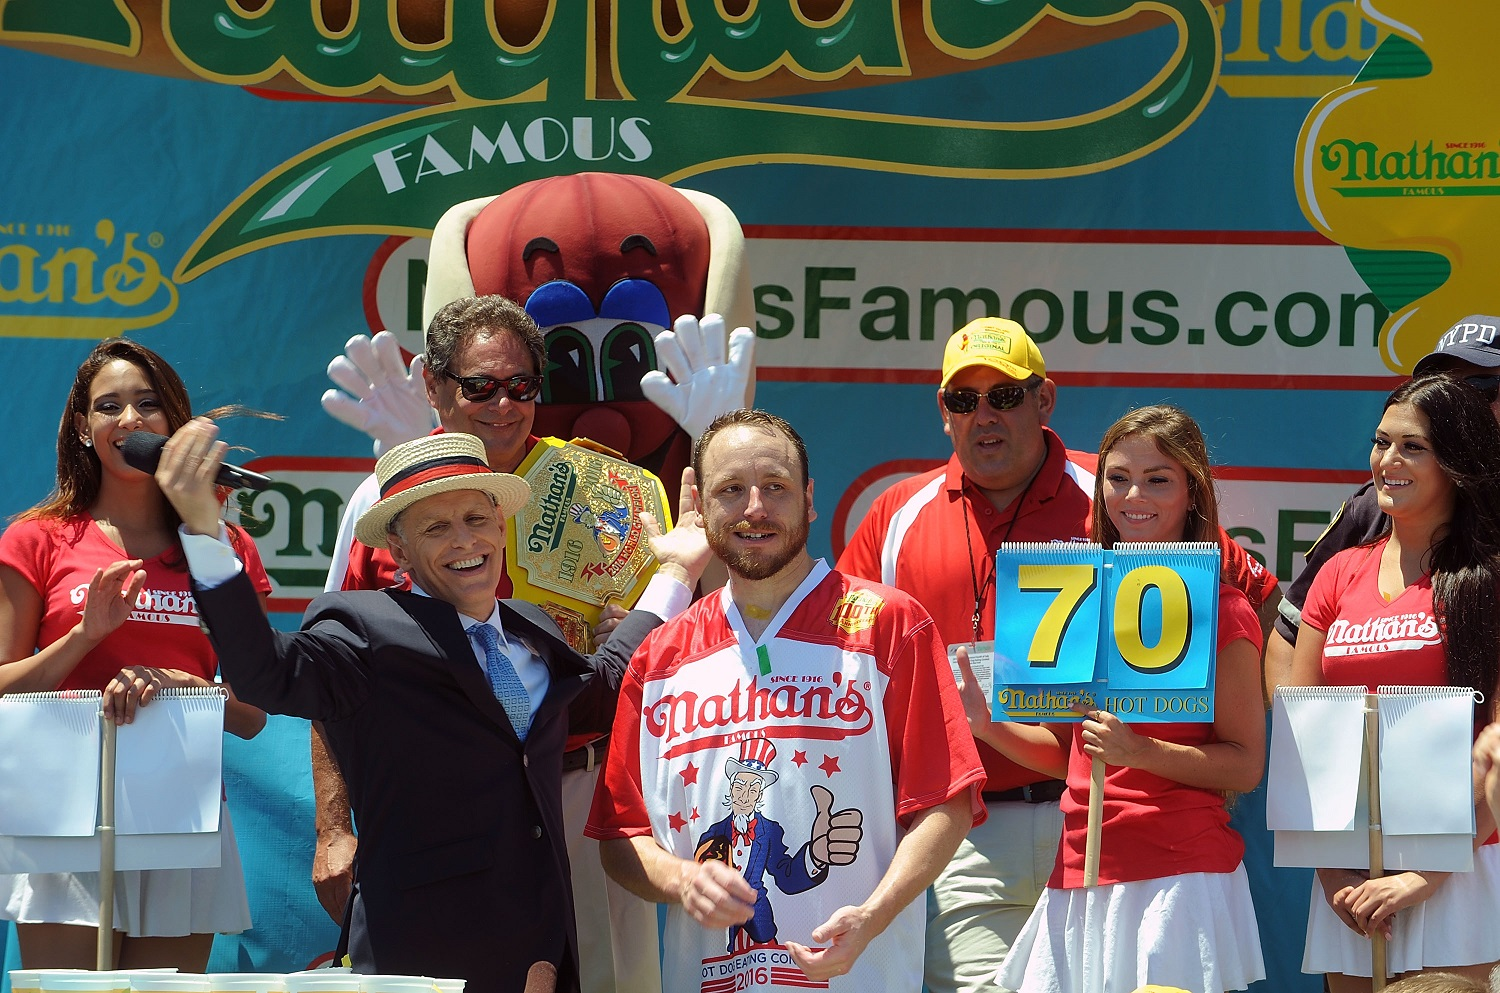 Joey Chestnut regained his Nathan's Hot Dog Eating title in 2016 by breaking his own record. Bobby Bank/WireImage/Getty Images